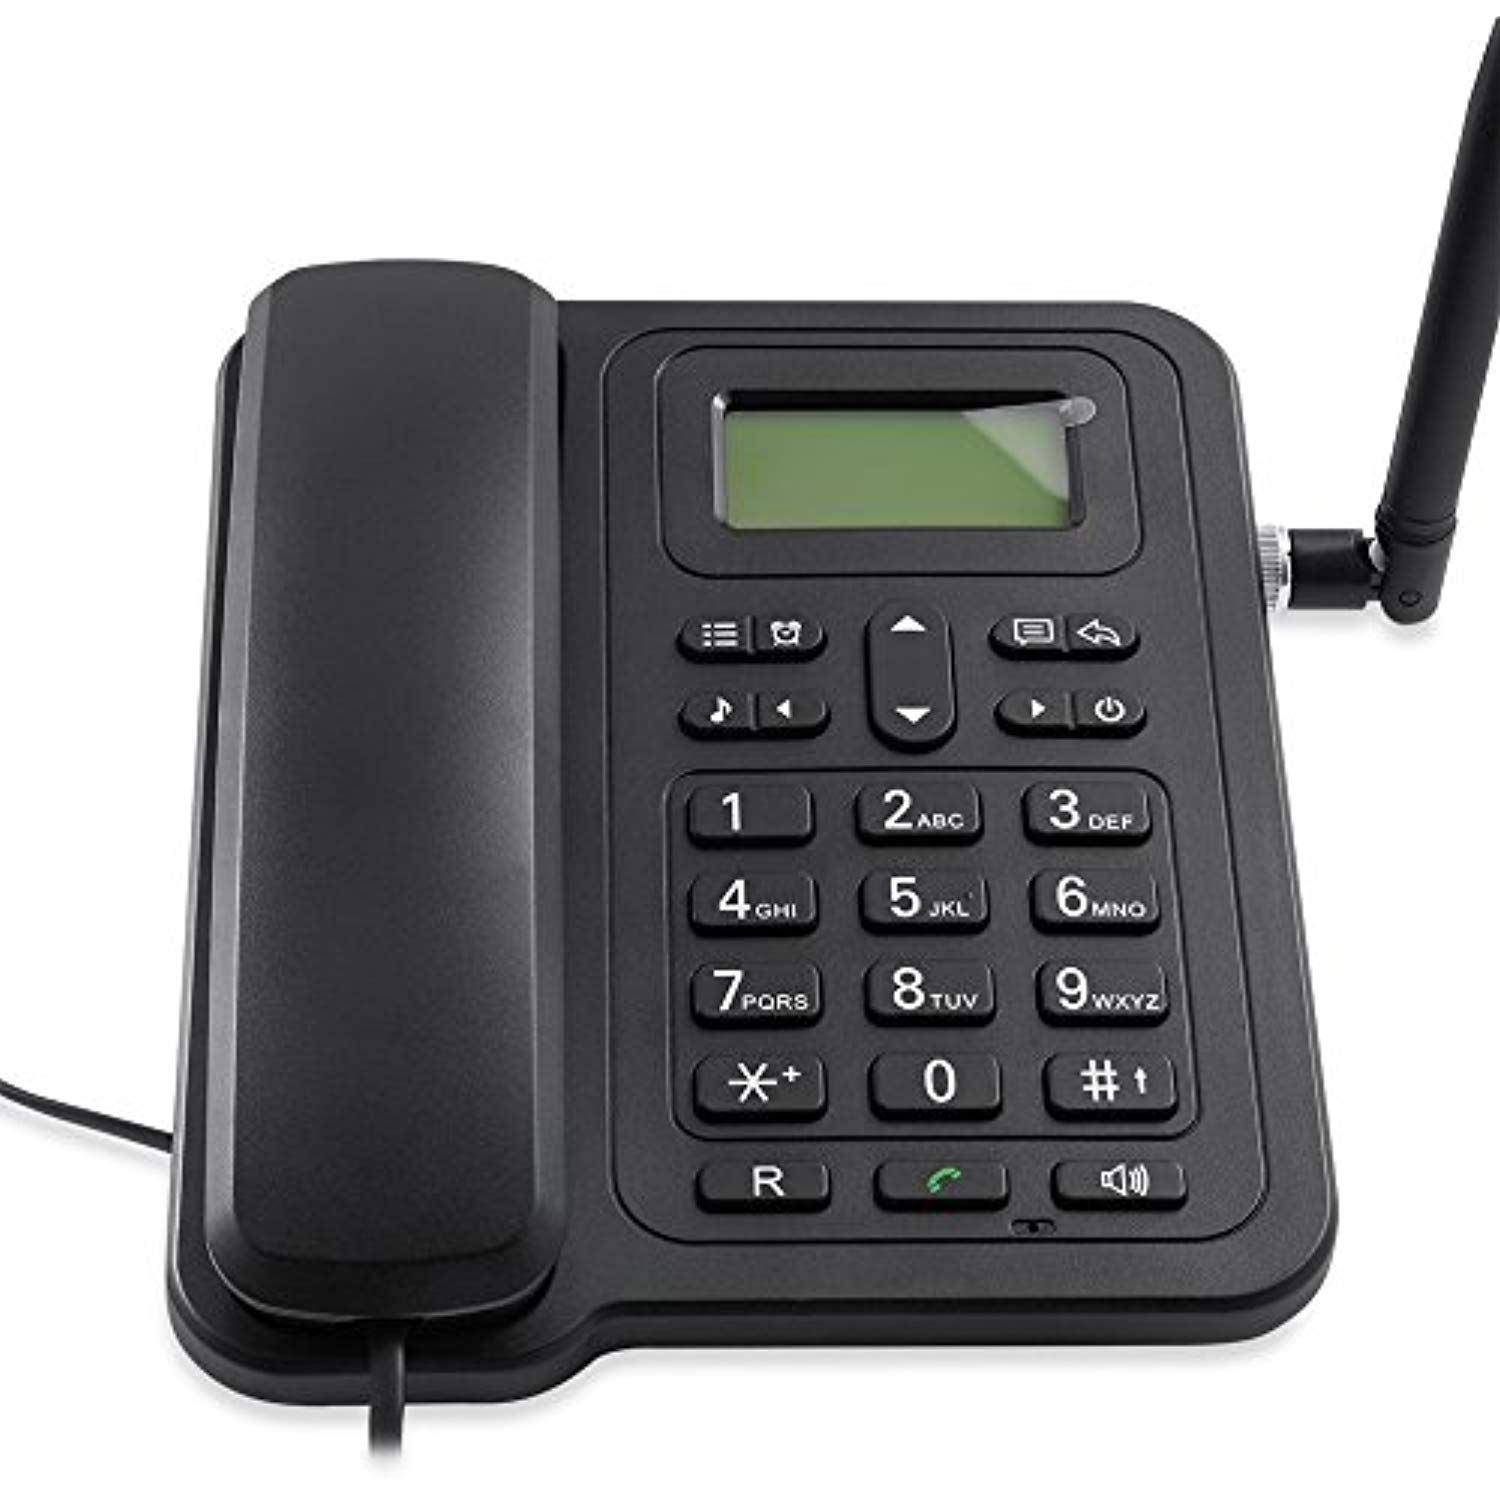 Gsm wireless telephone desktop fixed phone for home and